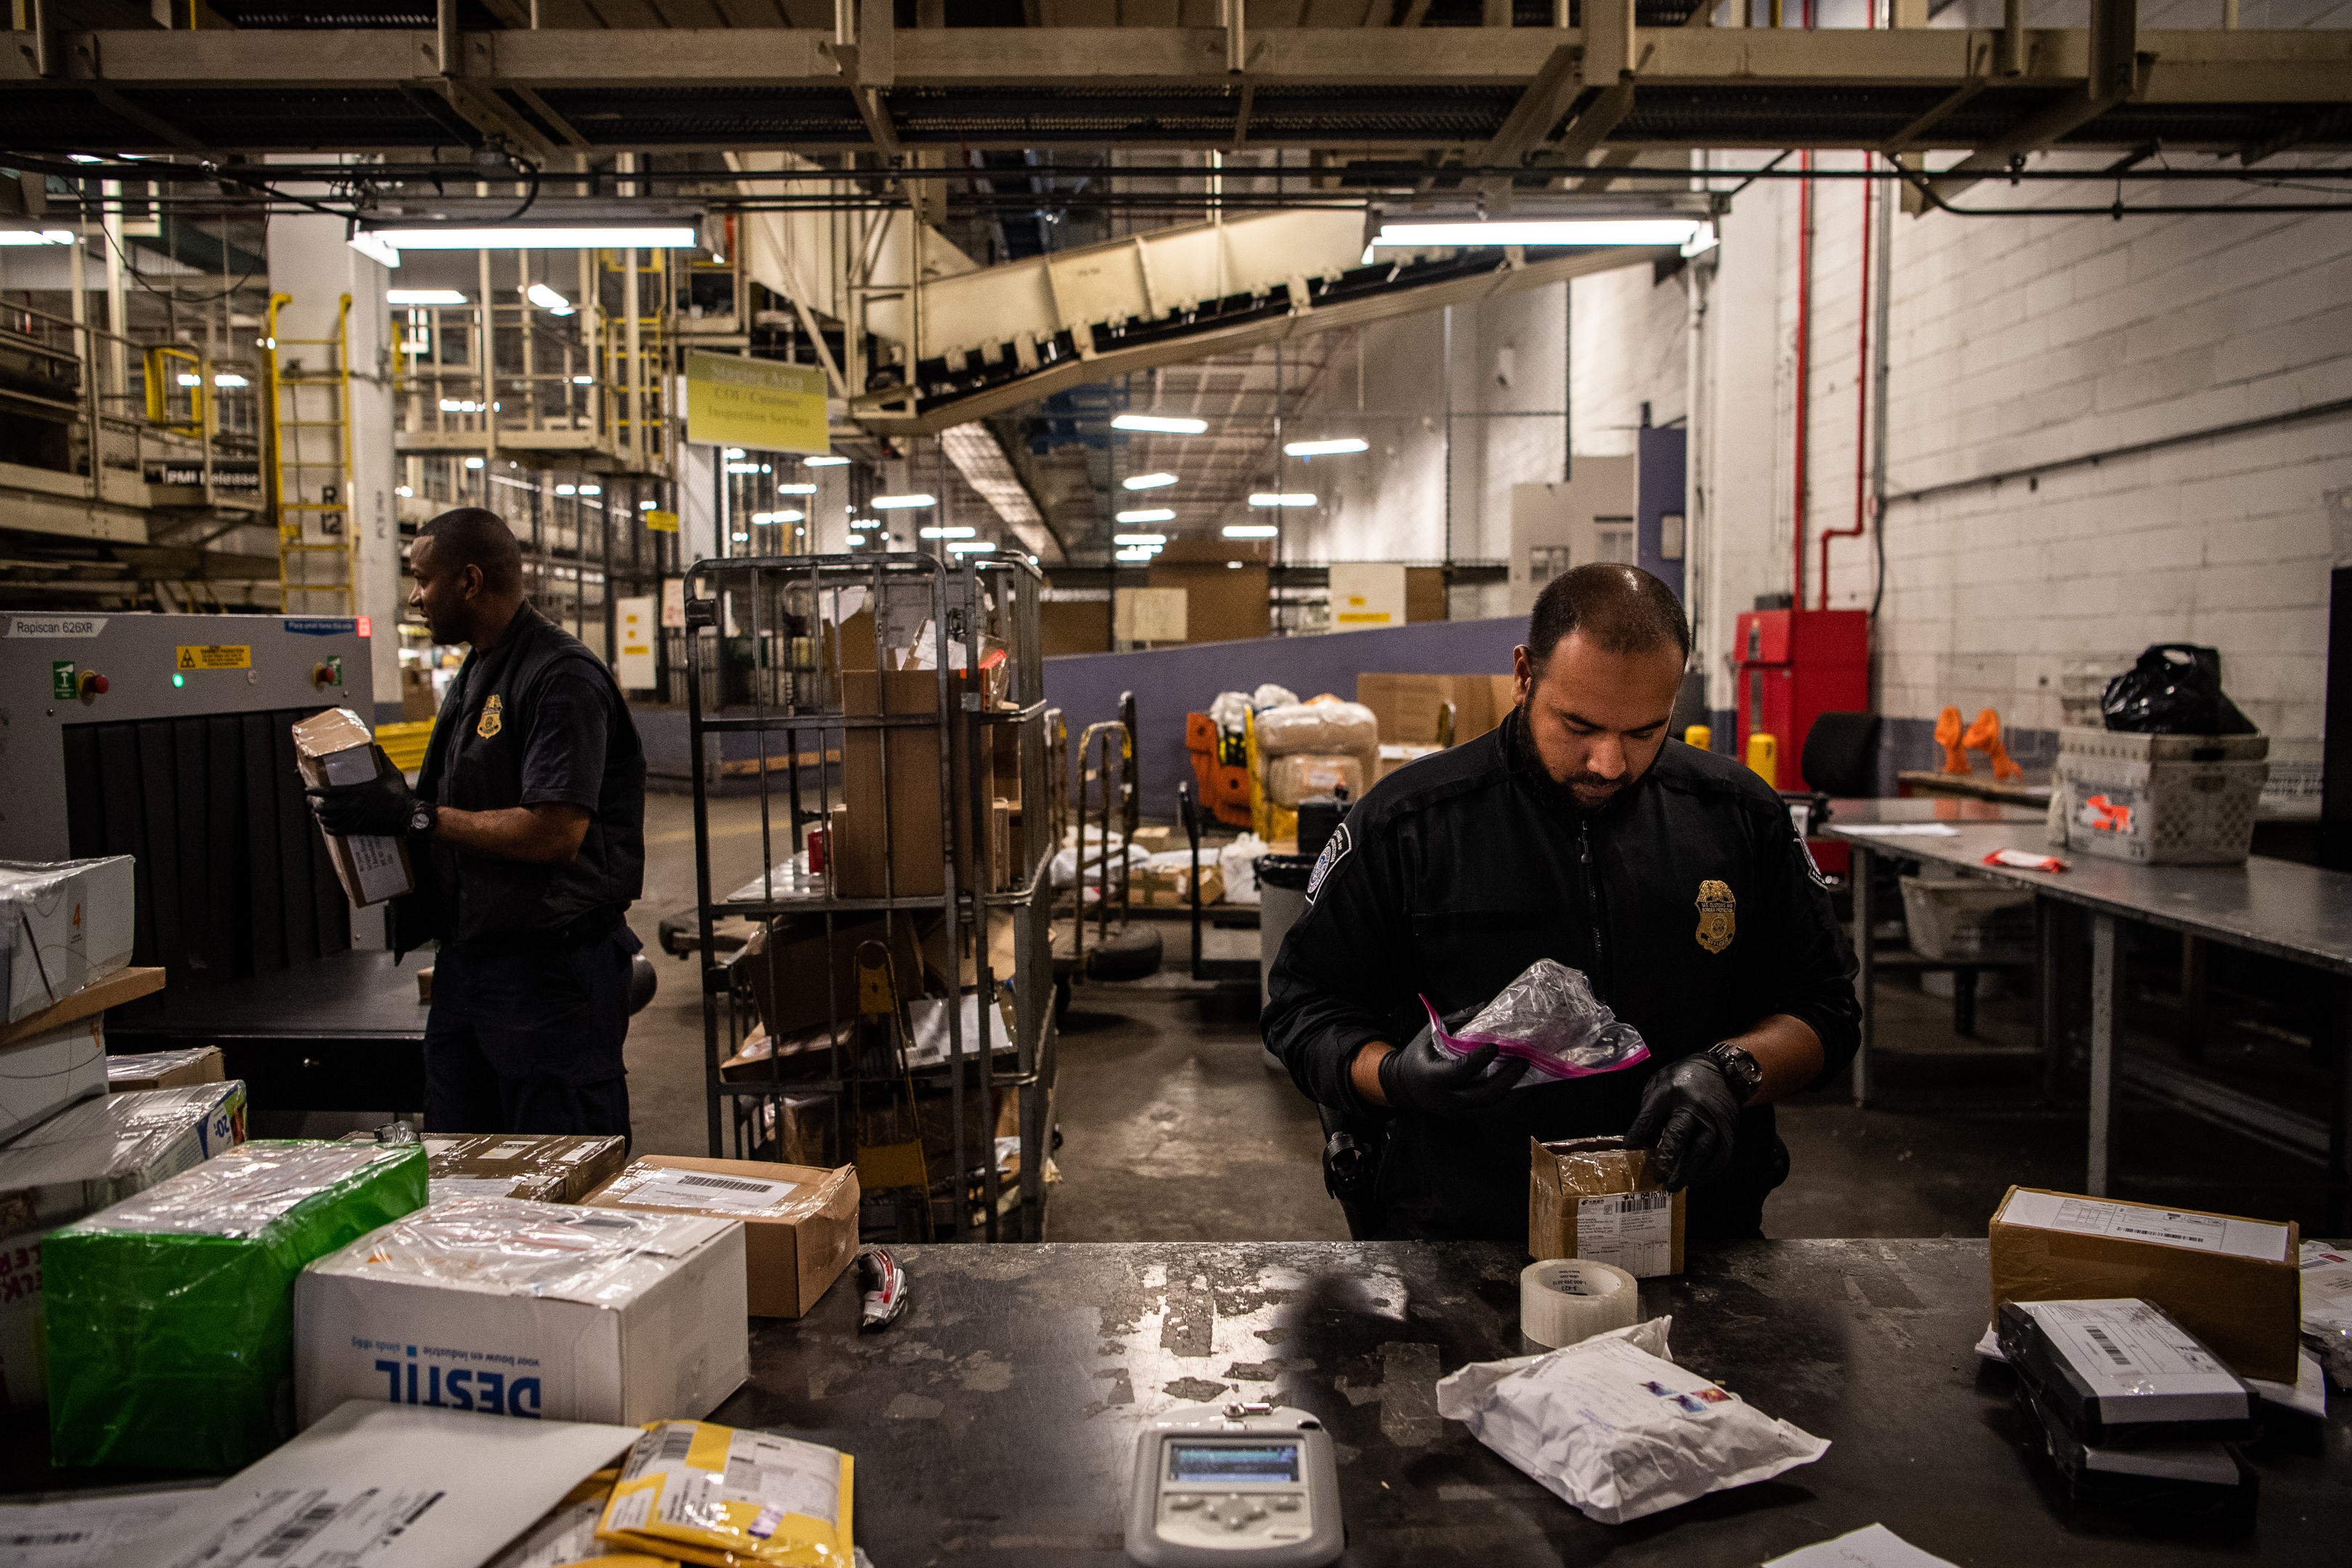 Sustoms and Border Protection officer Mohammed Rahman holds a bag later found to be filled with fentanyl at John F. Kennedy International Airport's mail facility in New York on Sept. 7, 2018. MUST CREDIT: Washington Post photo by Salwan Georges